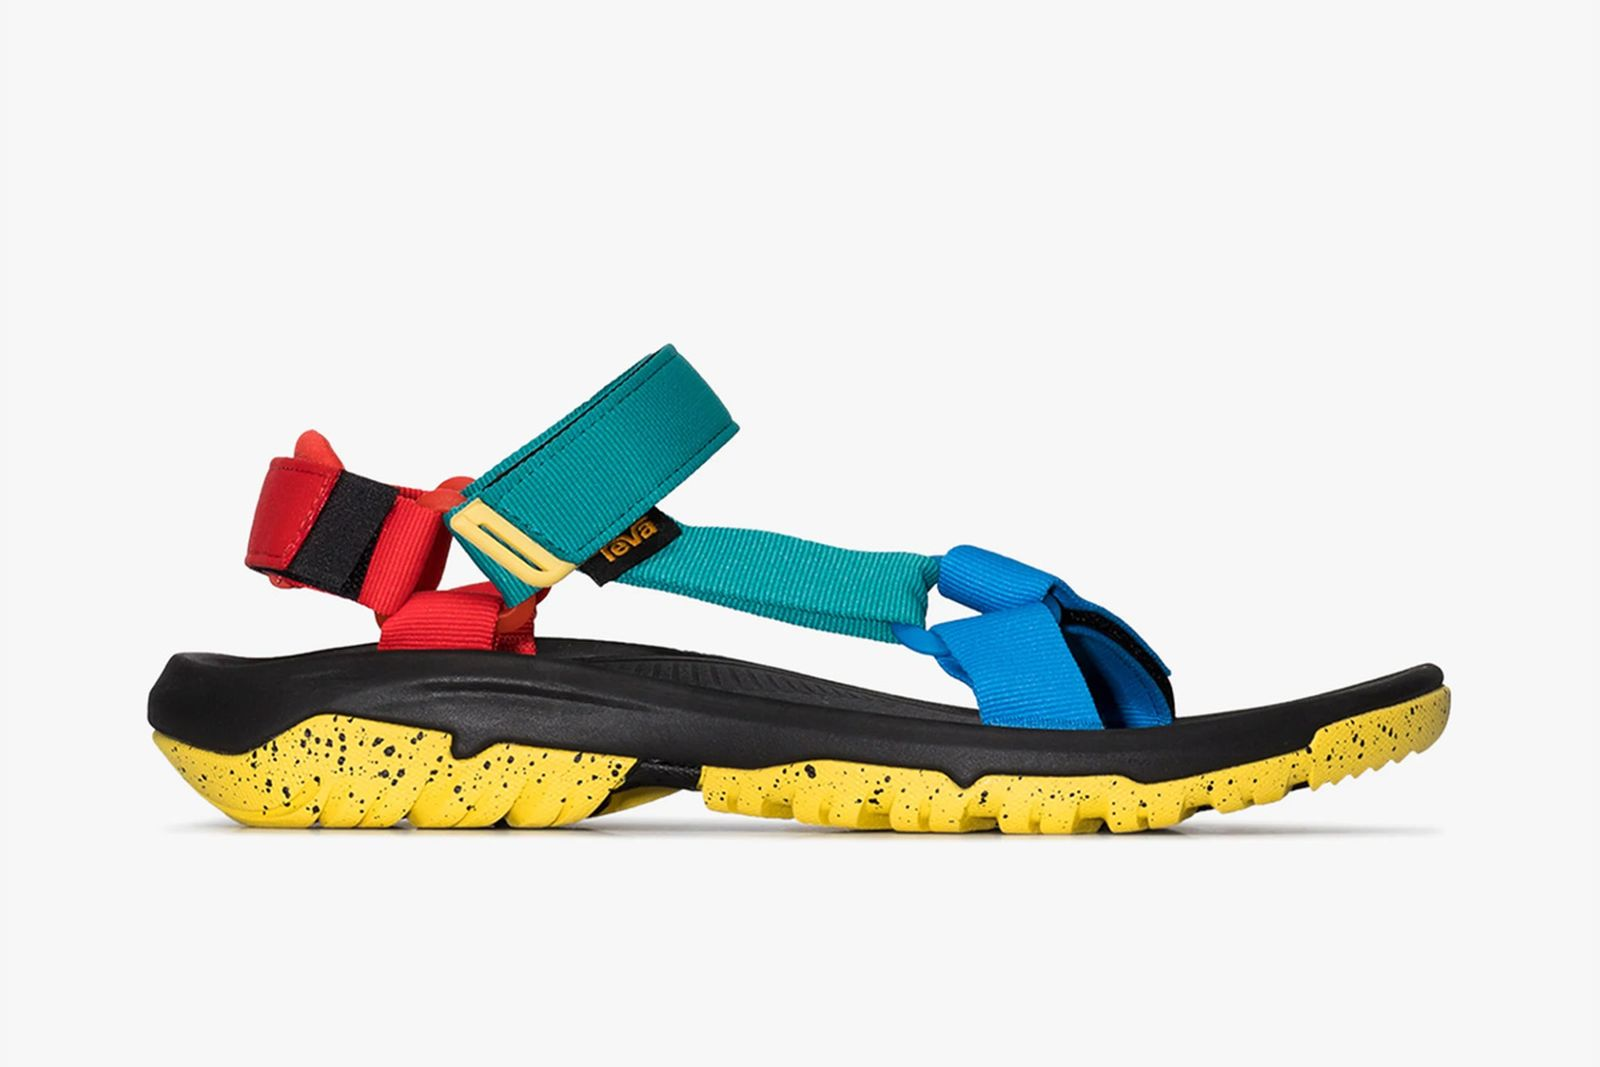 Side profile view of a colorful Teva Hurricane XLT2 sandal